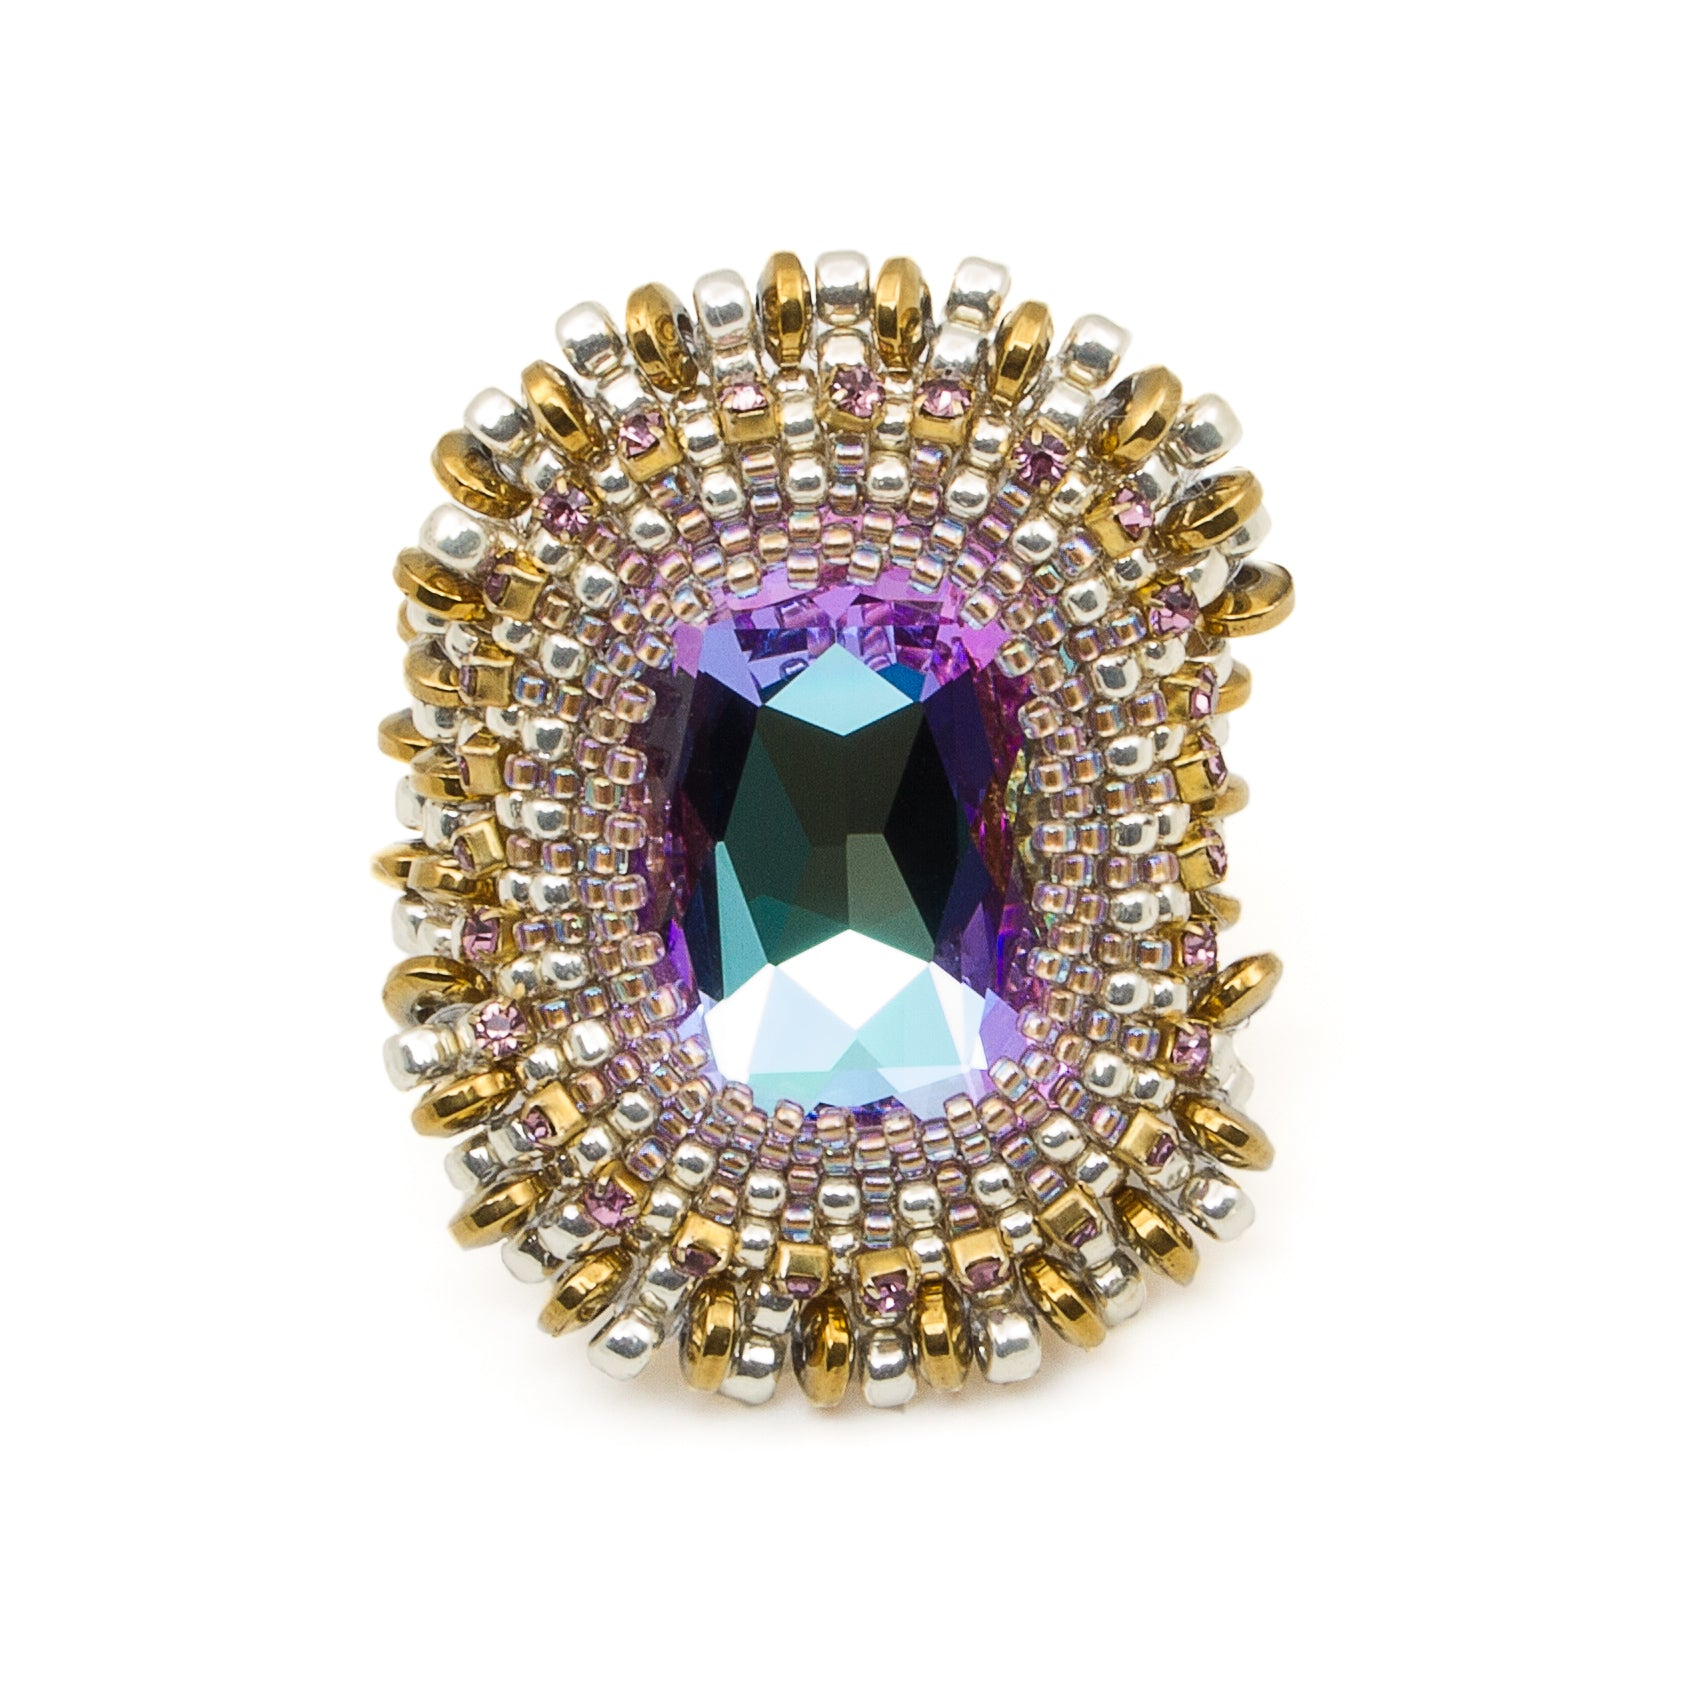 'Violet Tower' Ring